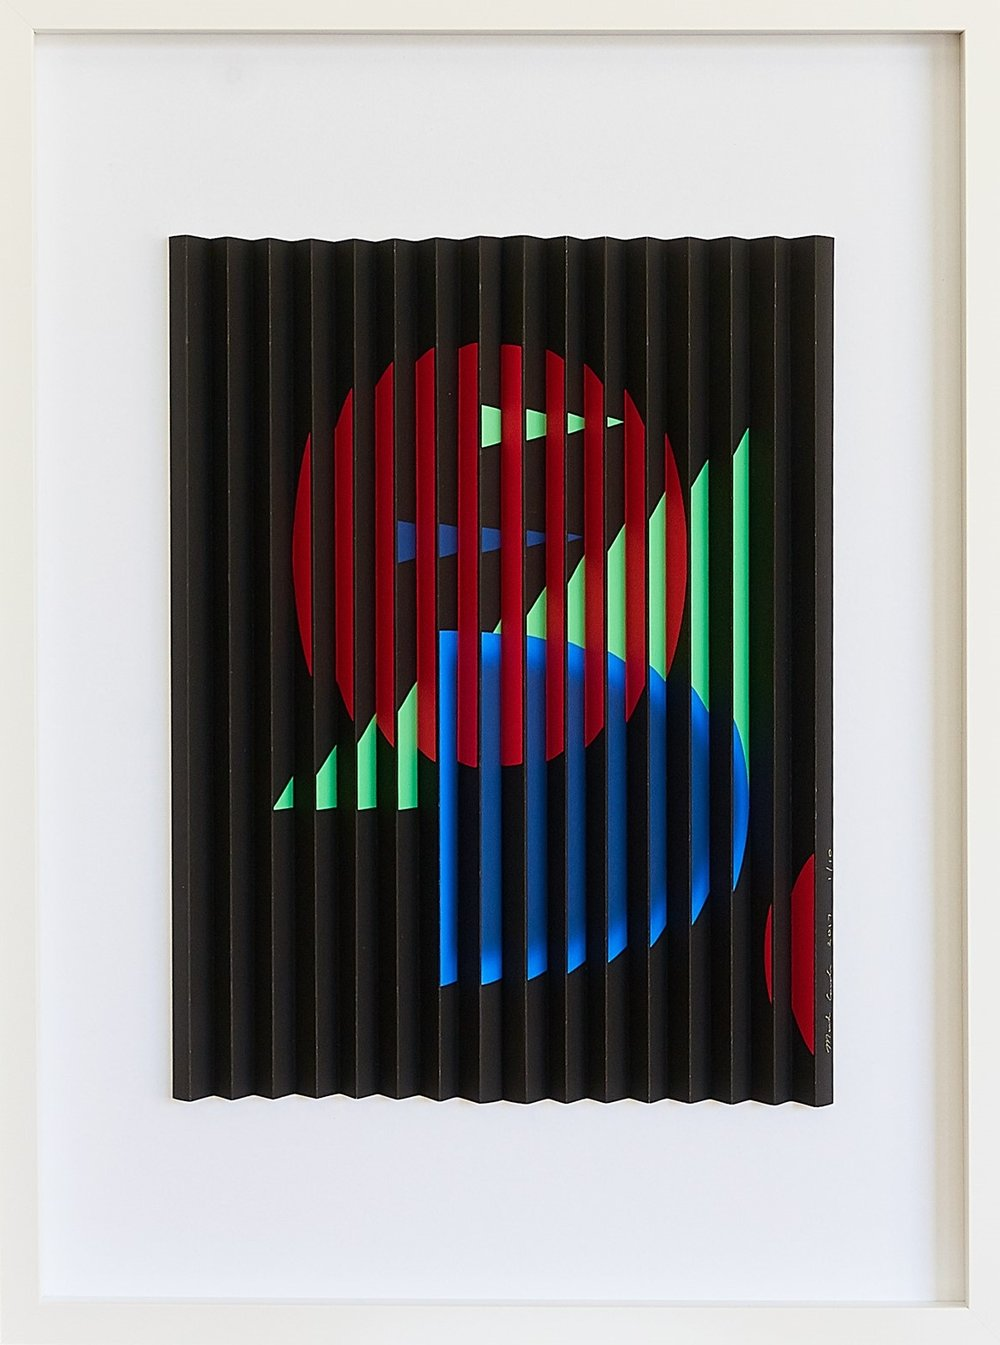 Red Circle  Mark Cowden, limited edition multiplane, #5/10, 490mm x 640mm inc. frame  sold